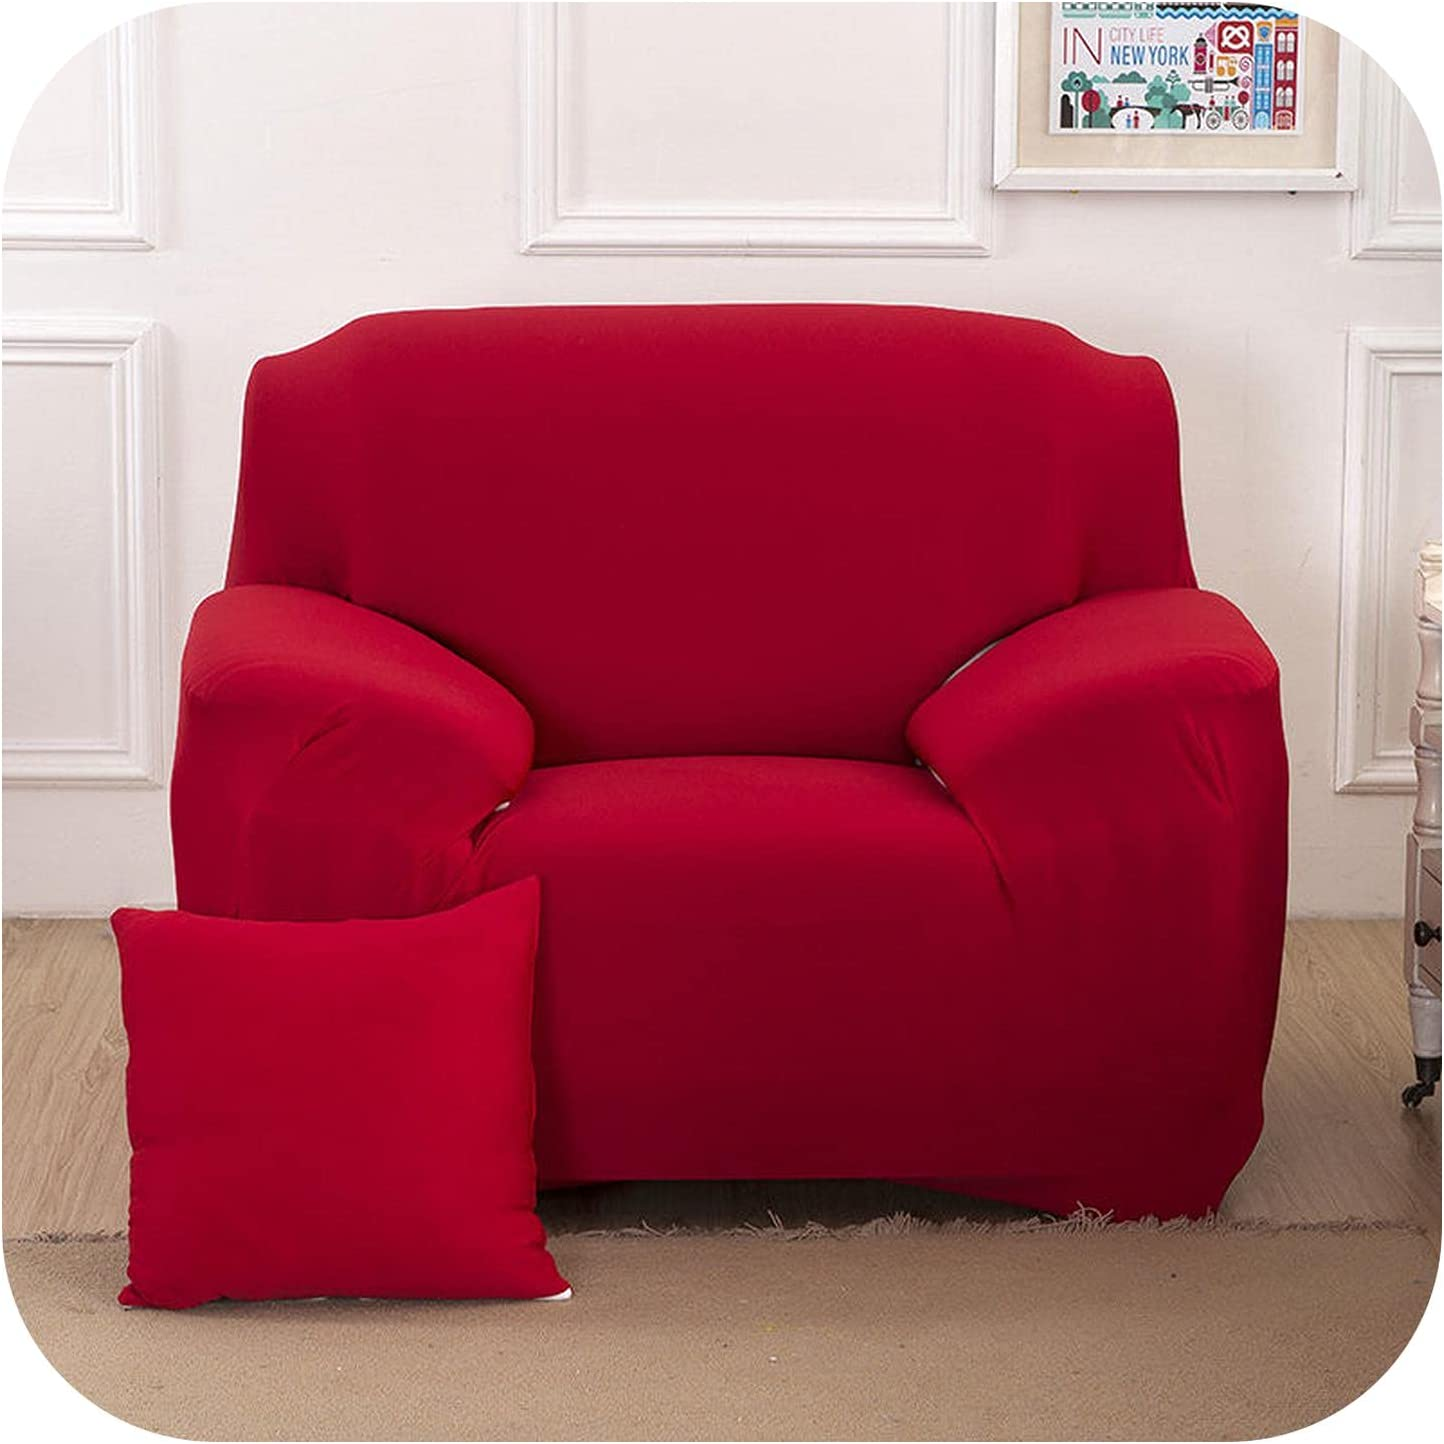 Xllion Couch Covers Excellence Elastic Limited time sale Sofa Tight All-Inc Cover Cotton Wrap